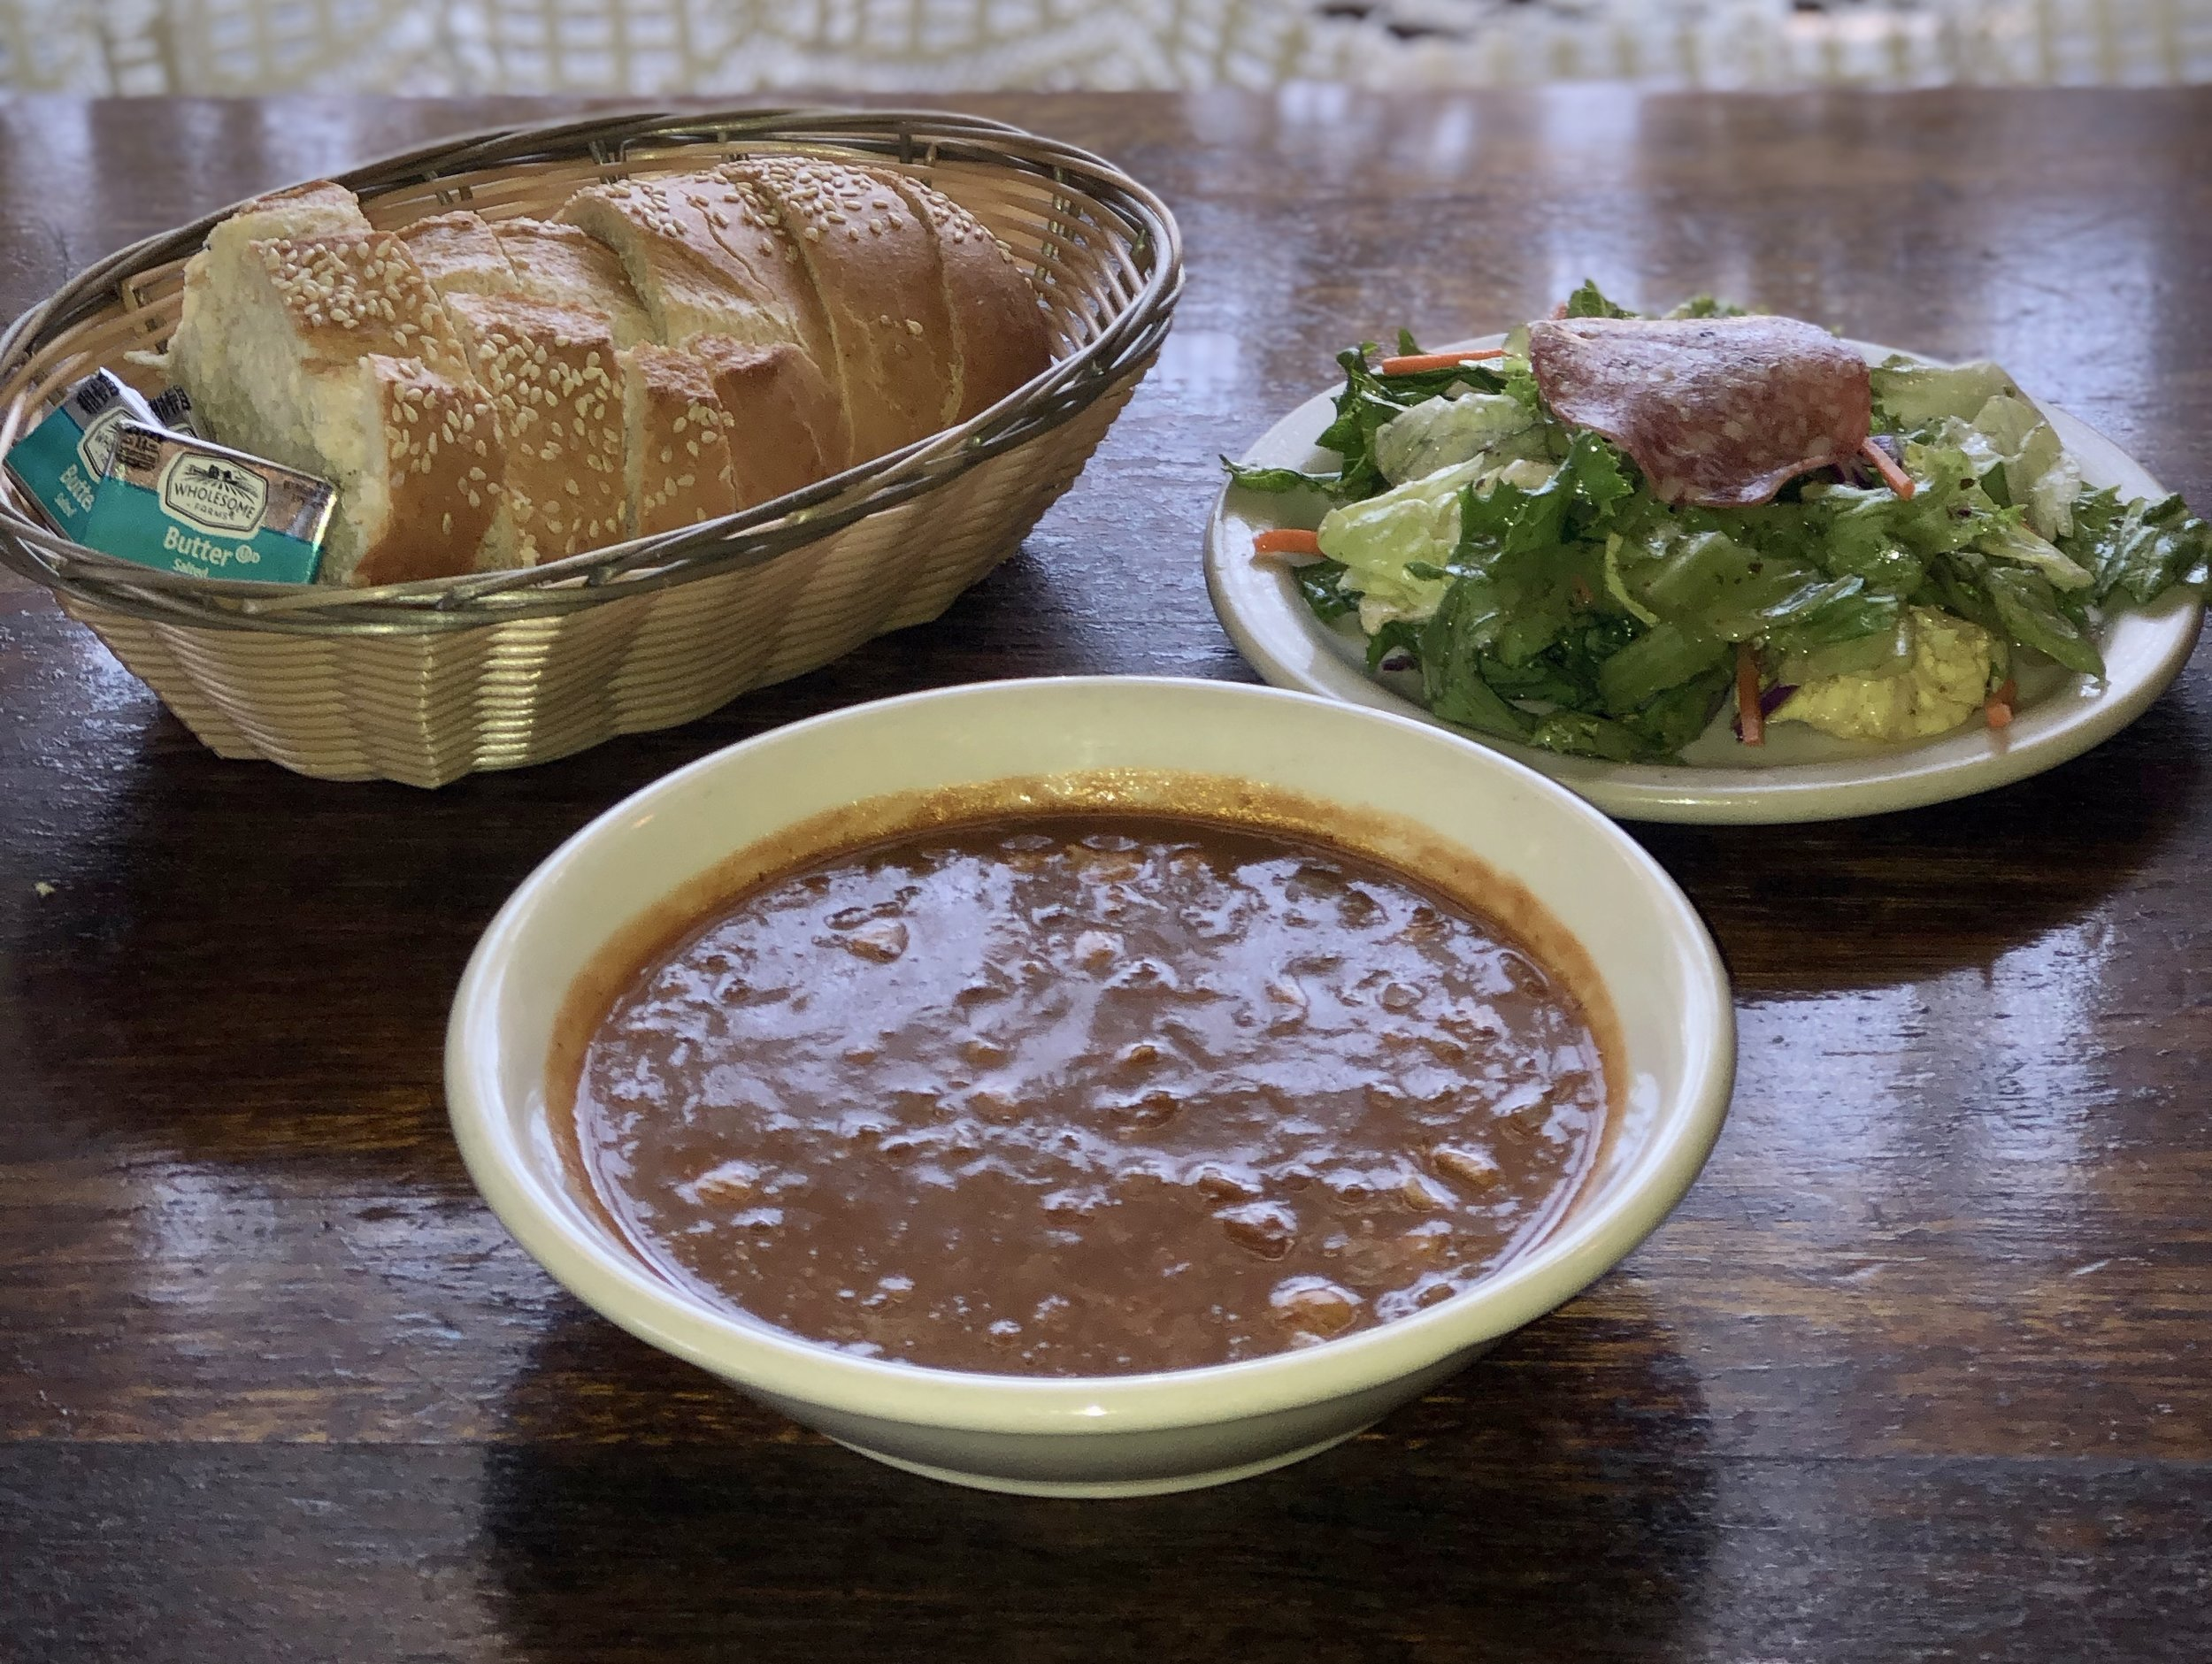 Soup, salad and bread.jpg